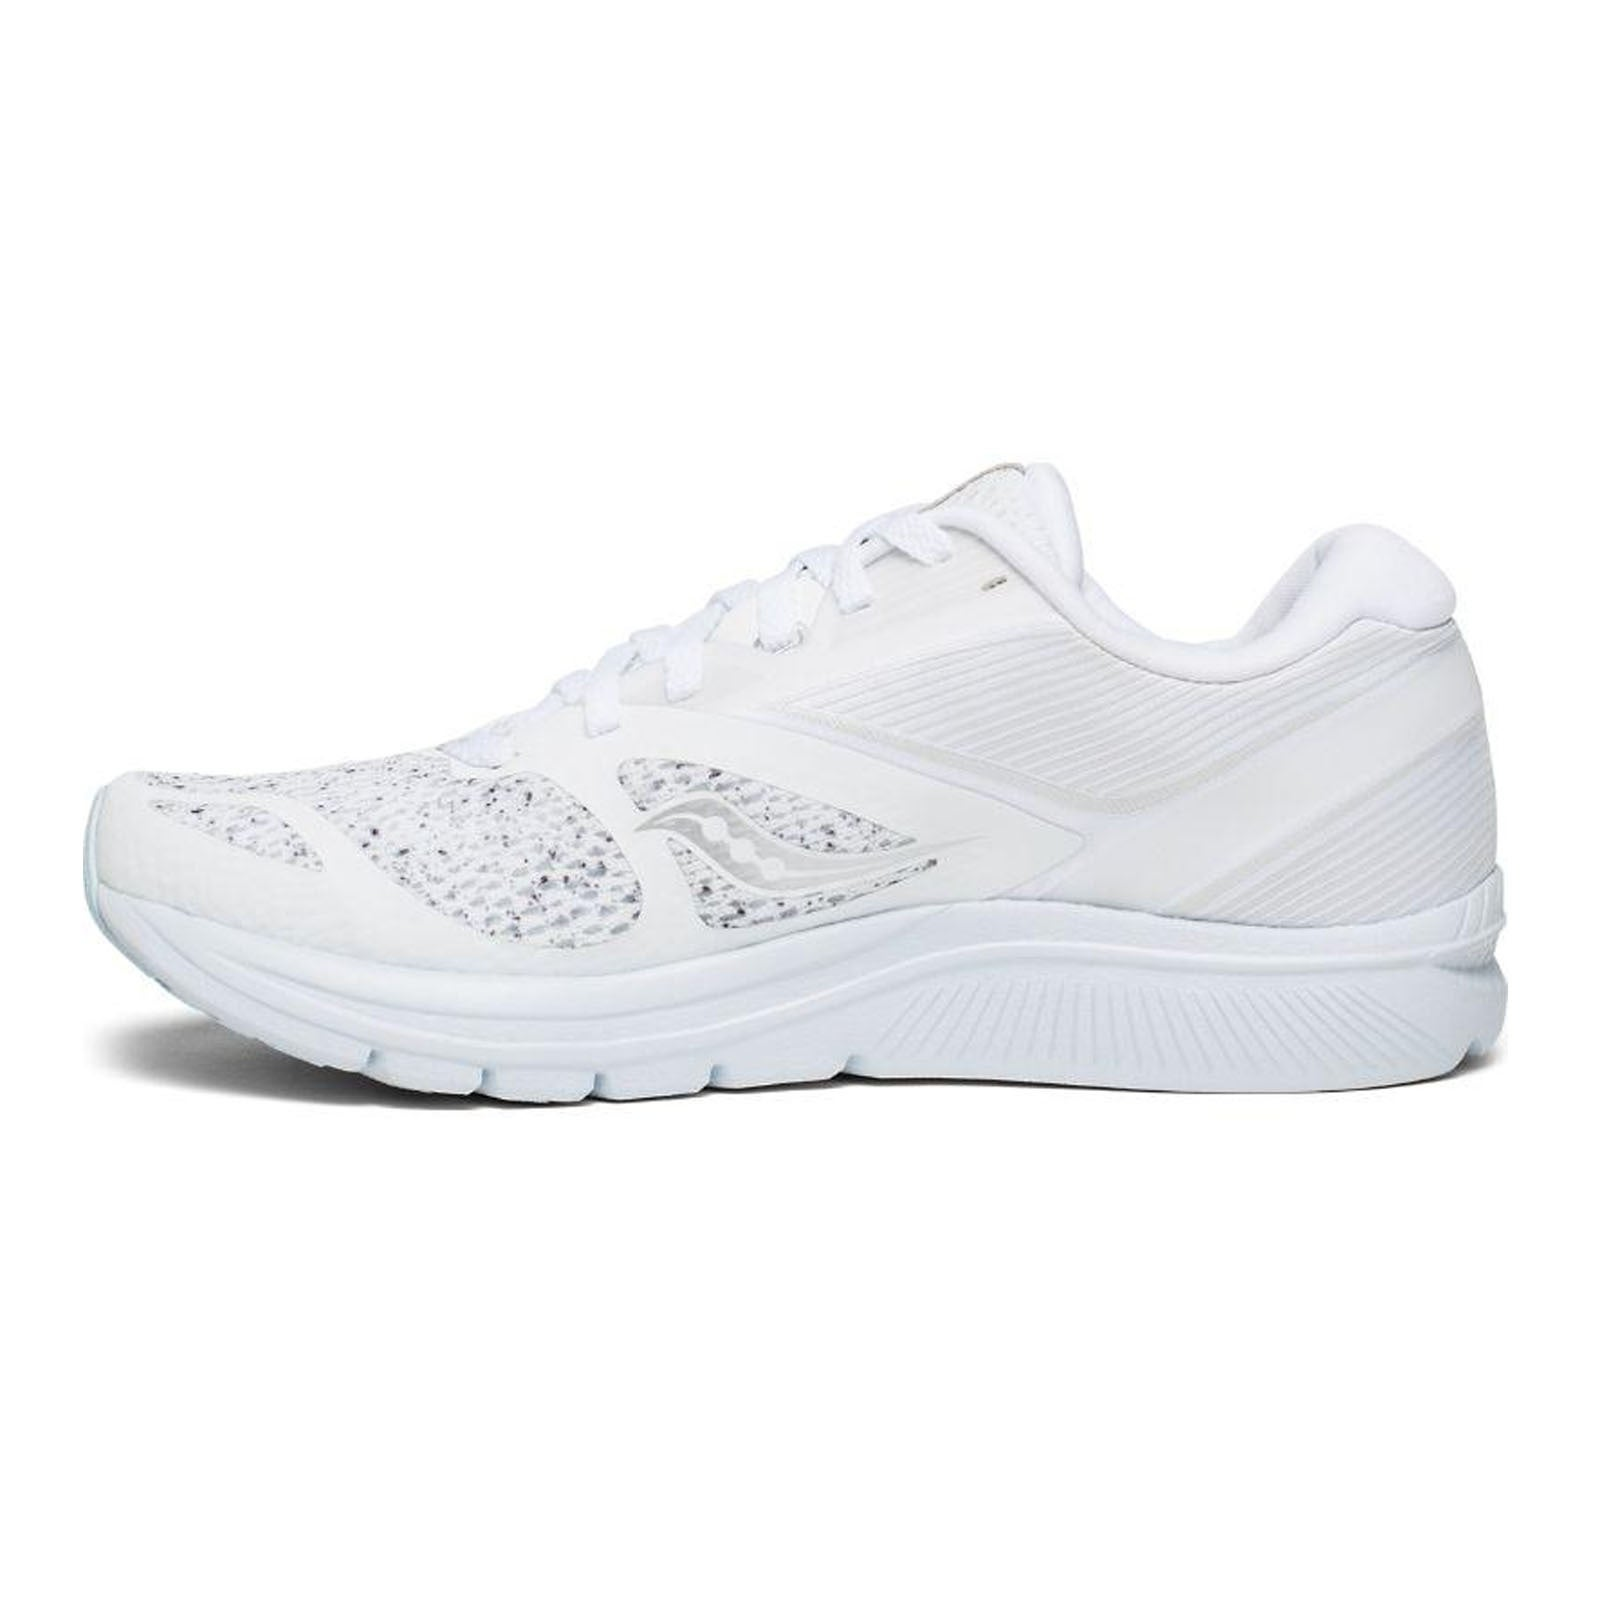 Saucony Women's KINVARA 9 Sneakers Runners Running Shoes White Noise